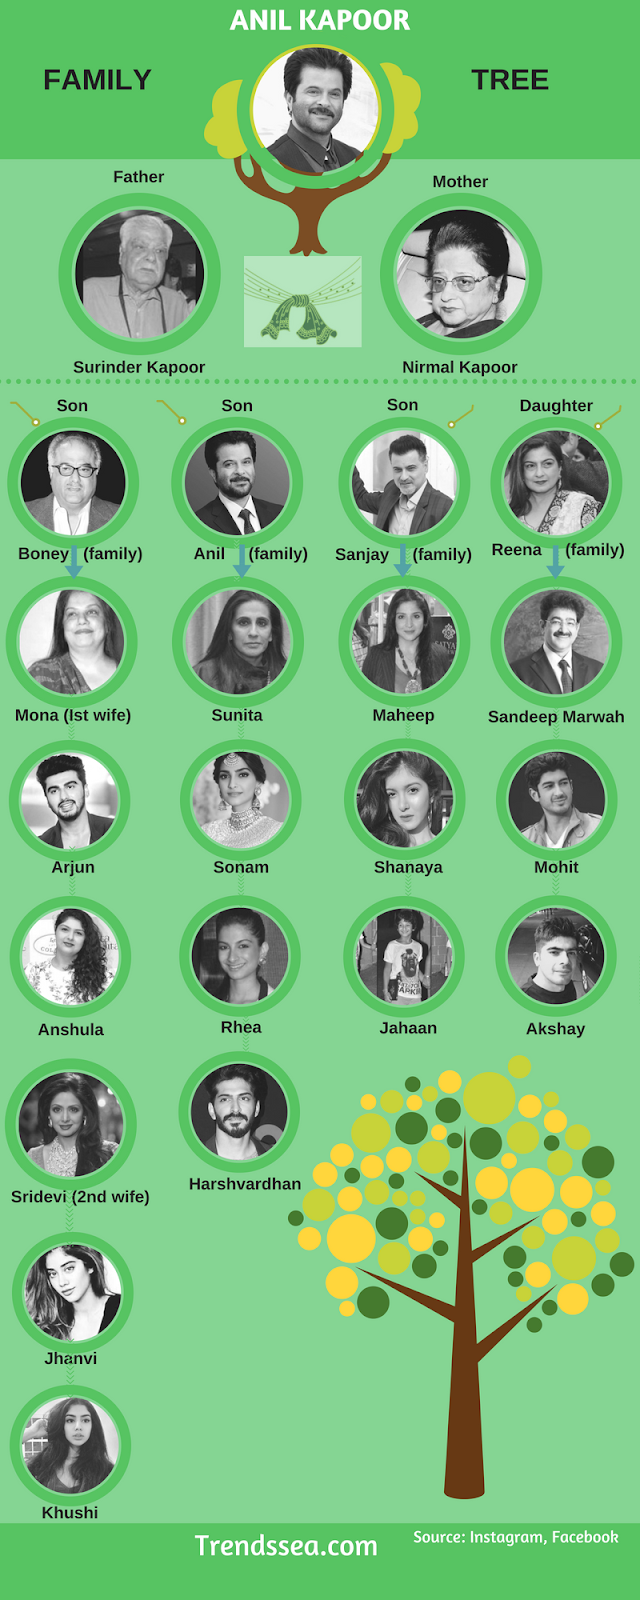 Anil Kapoor Family Tree Infographic